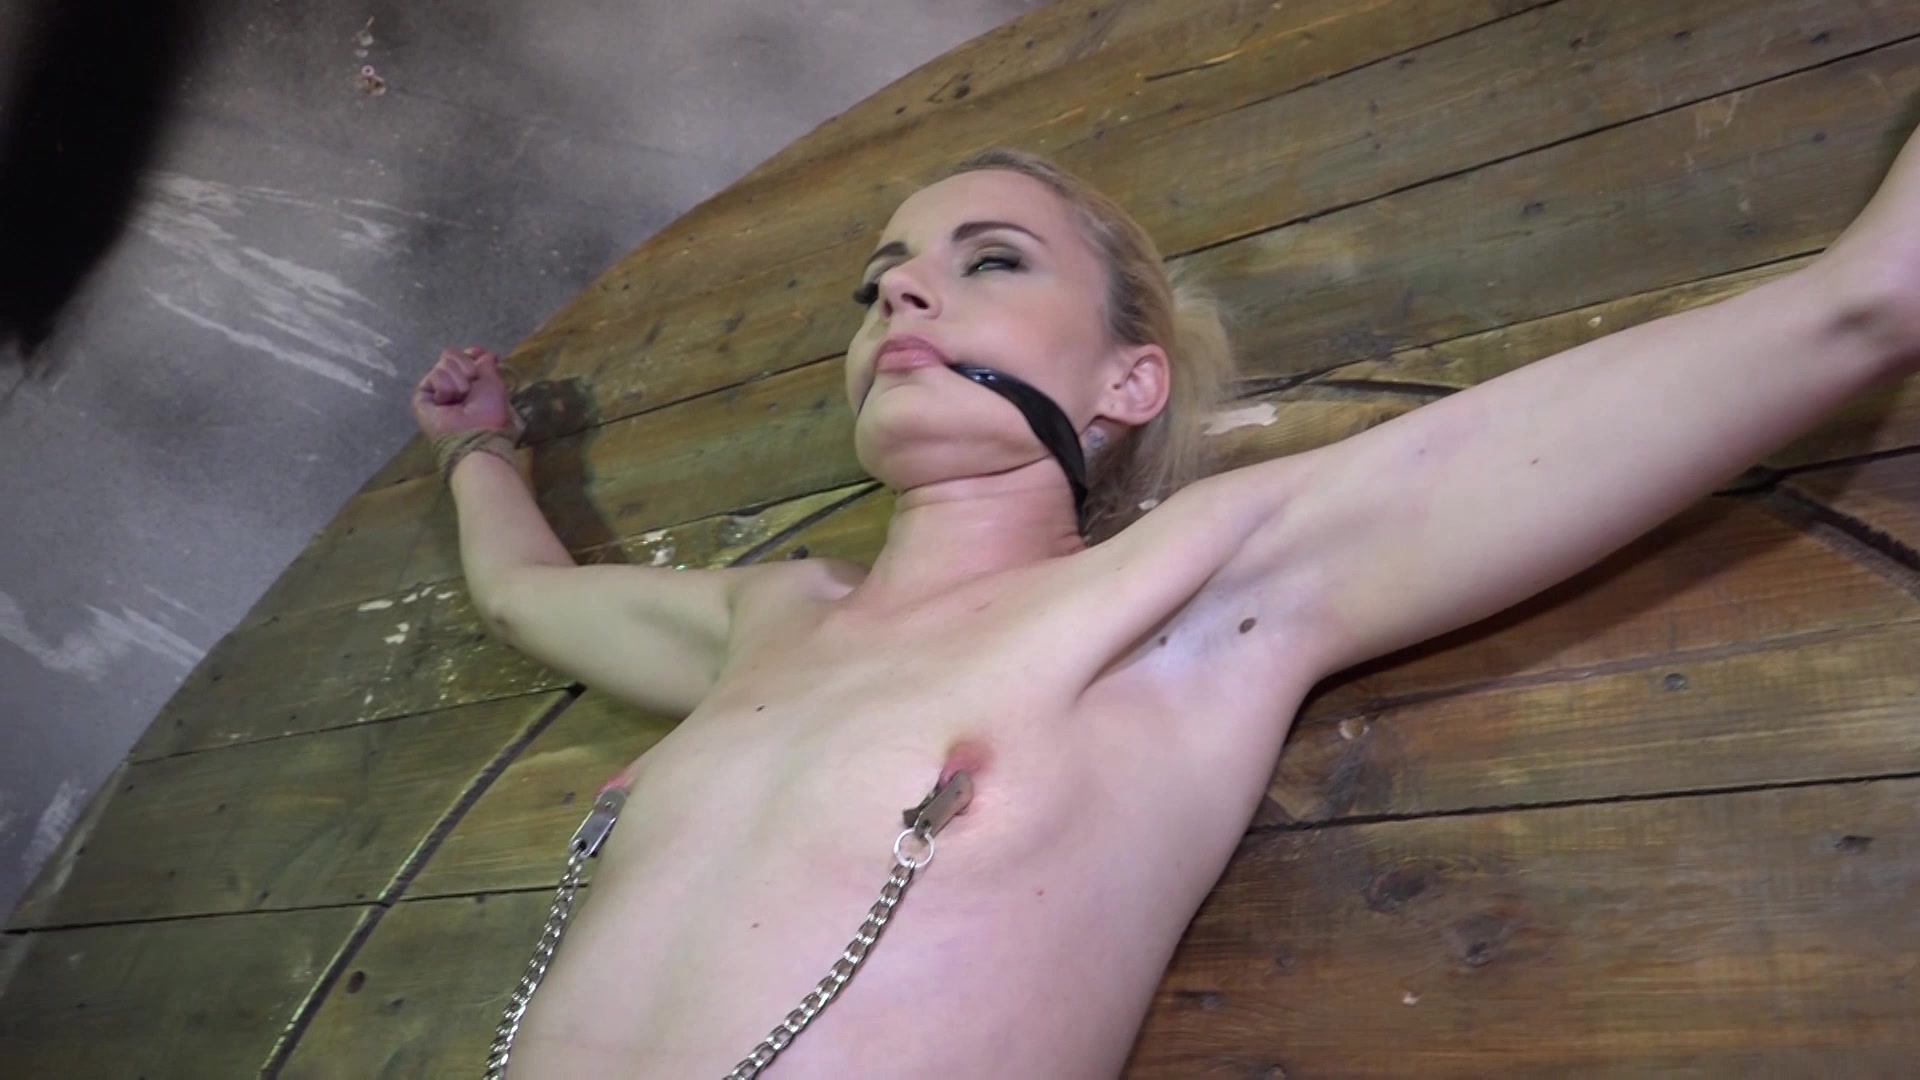 Aminated sexy damsel in distress nude club wives